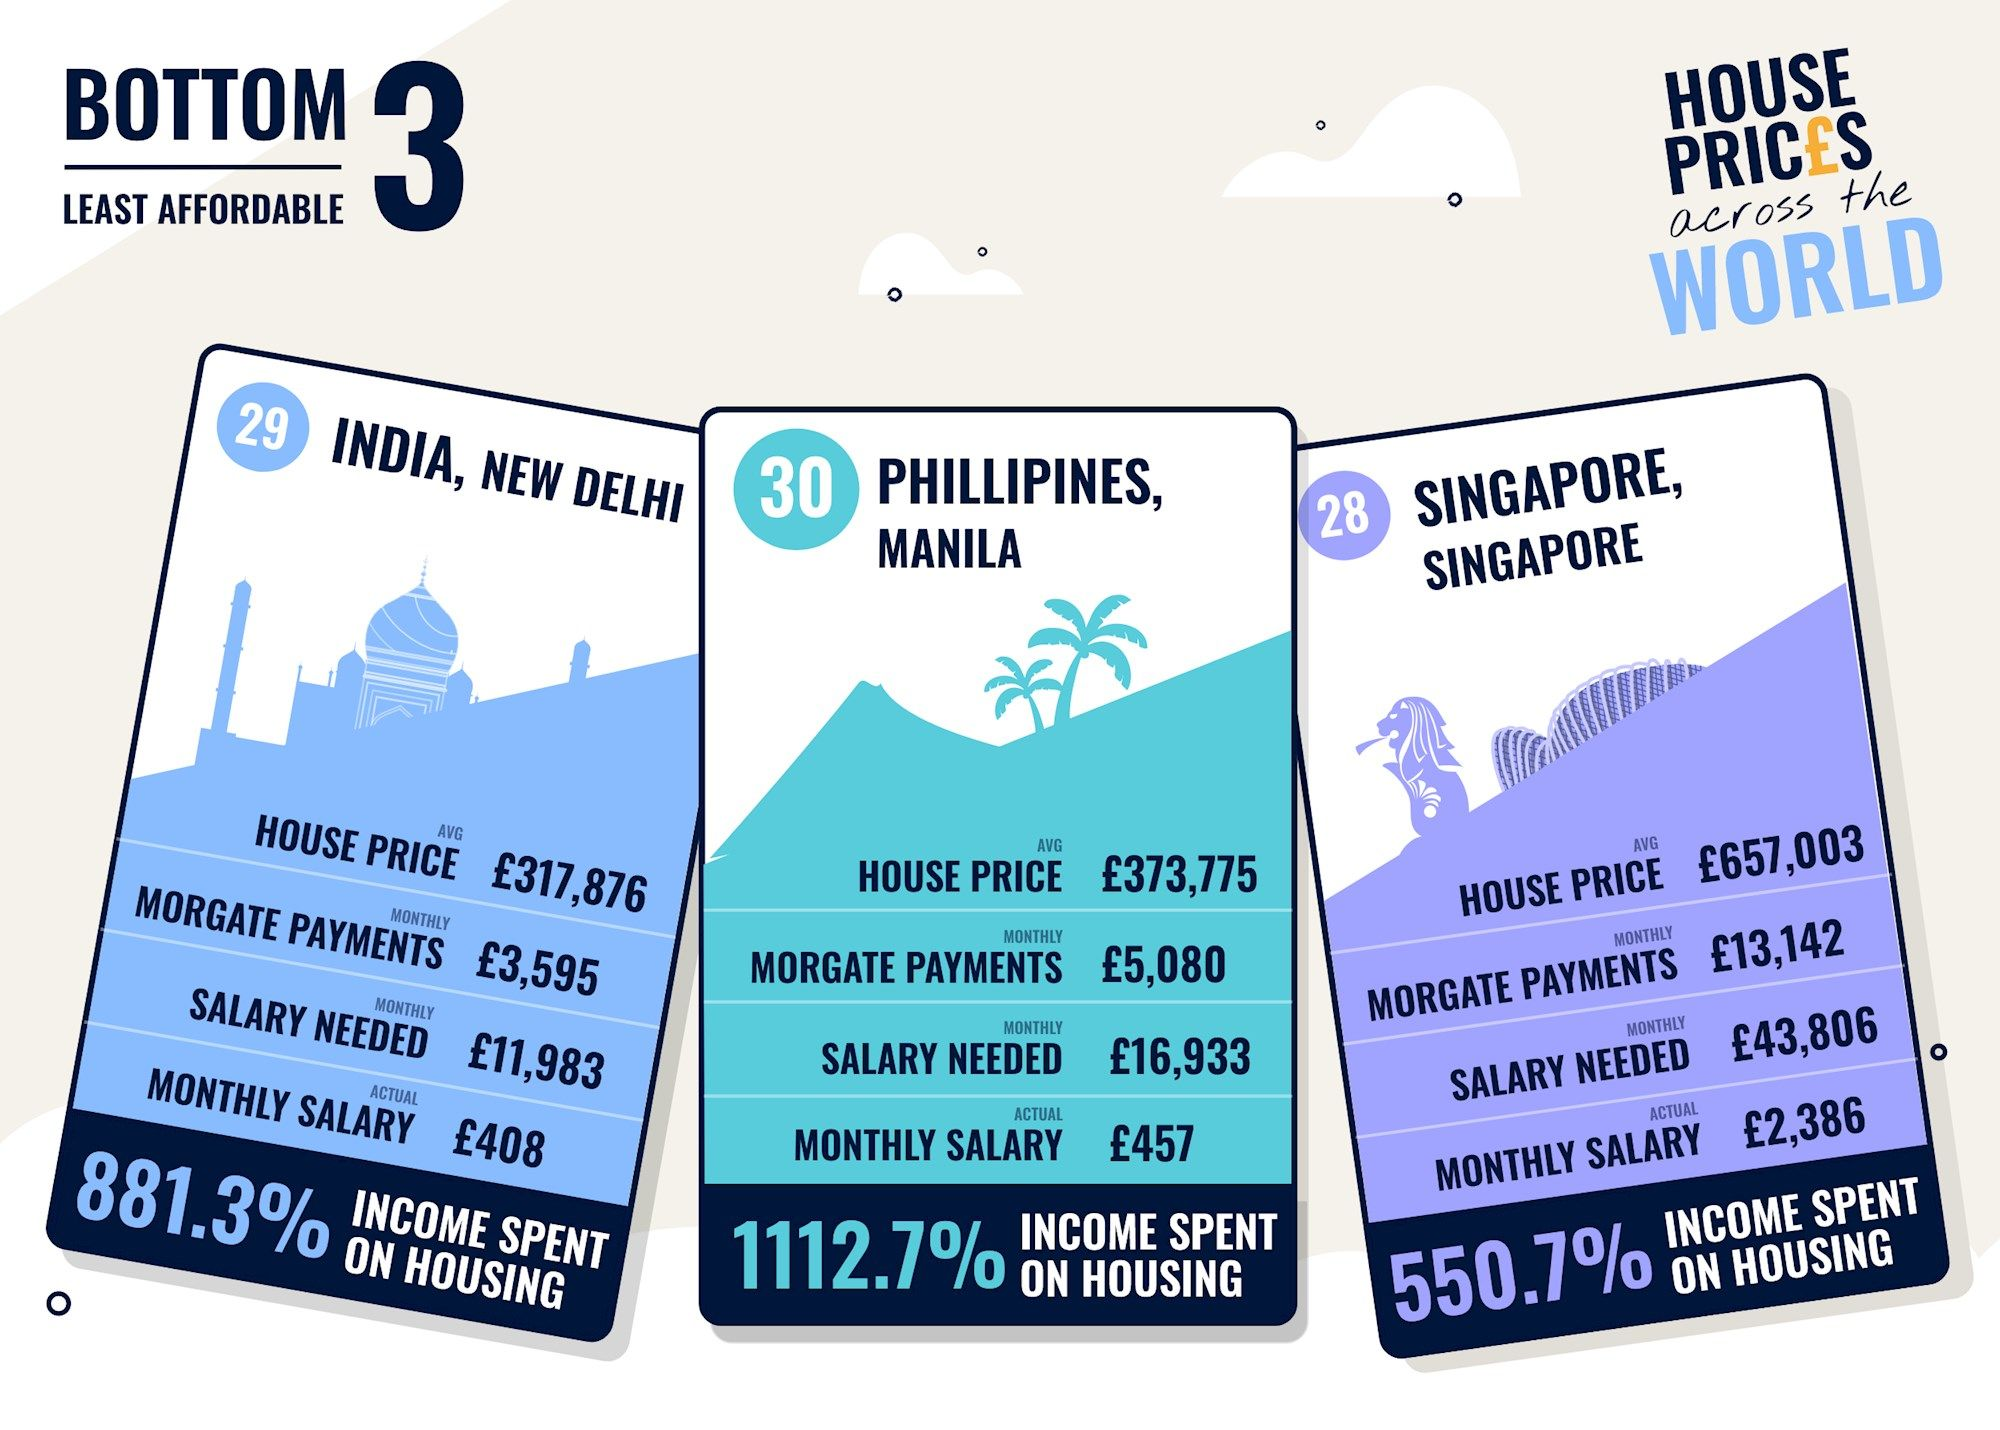 Least affordable countries to buy a house in the world